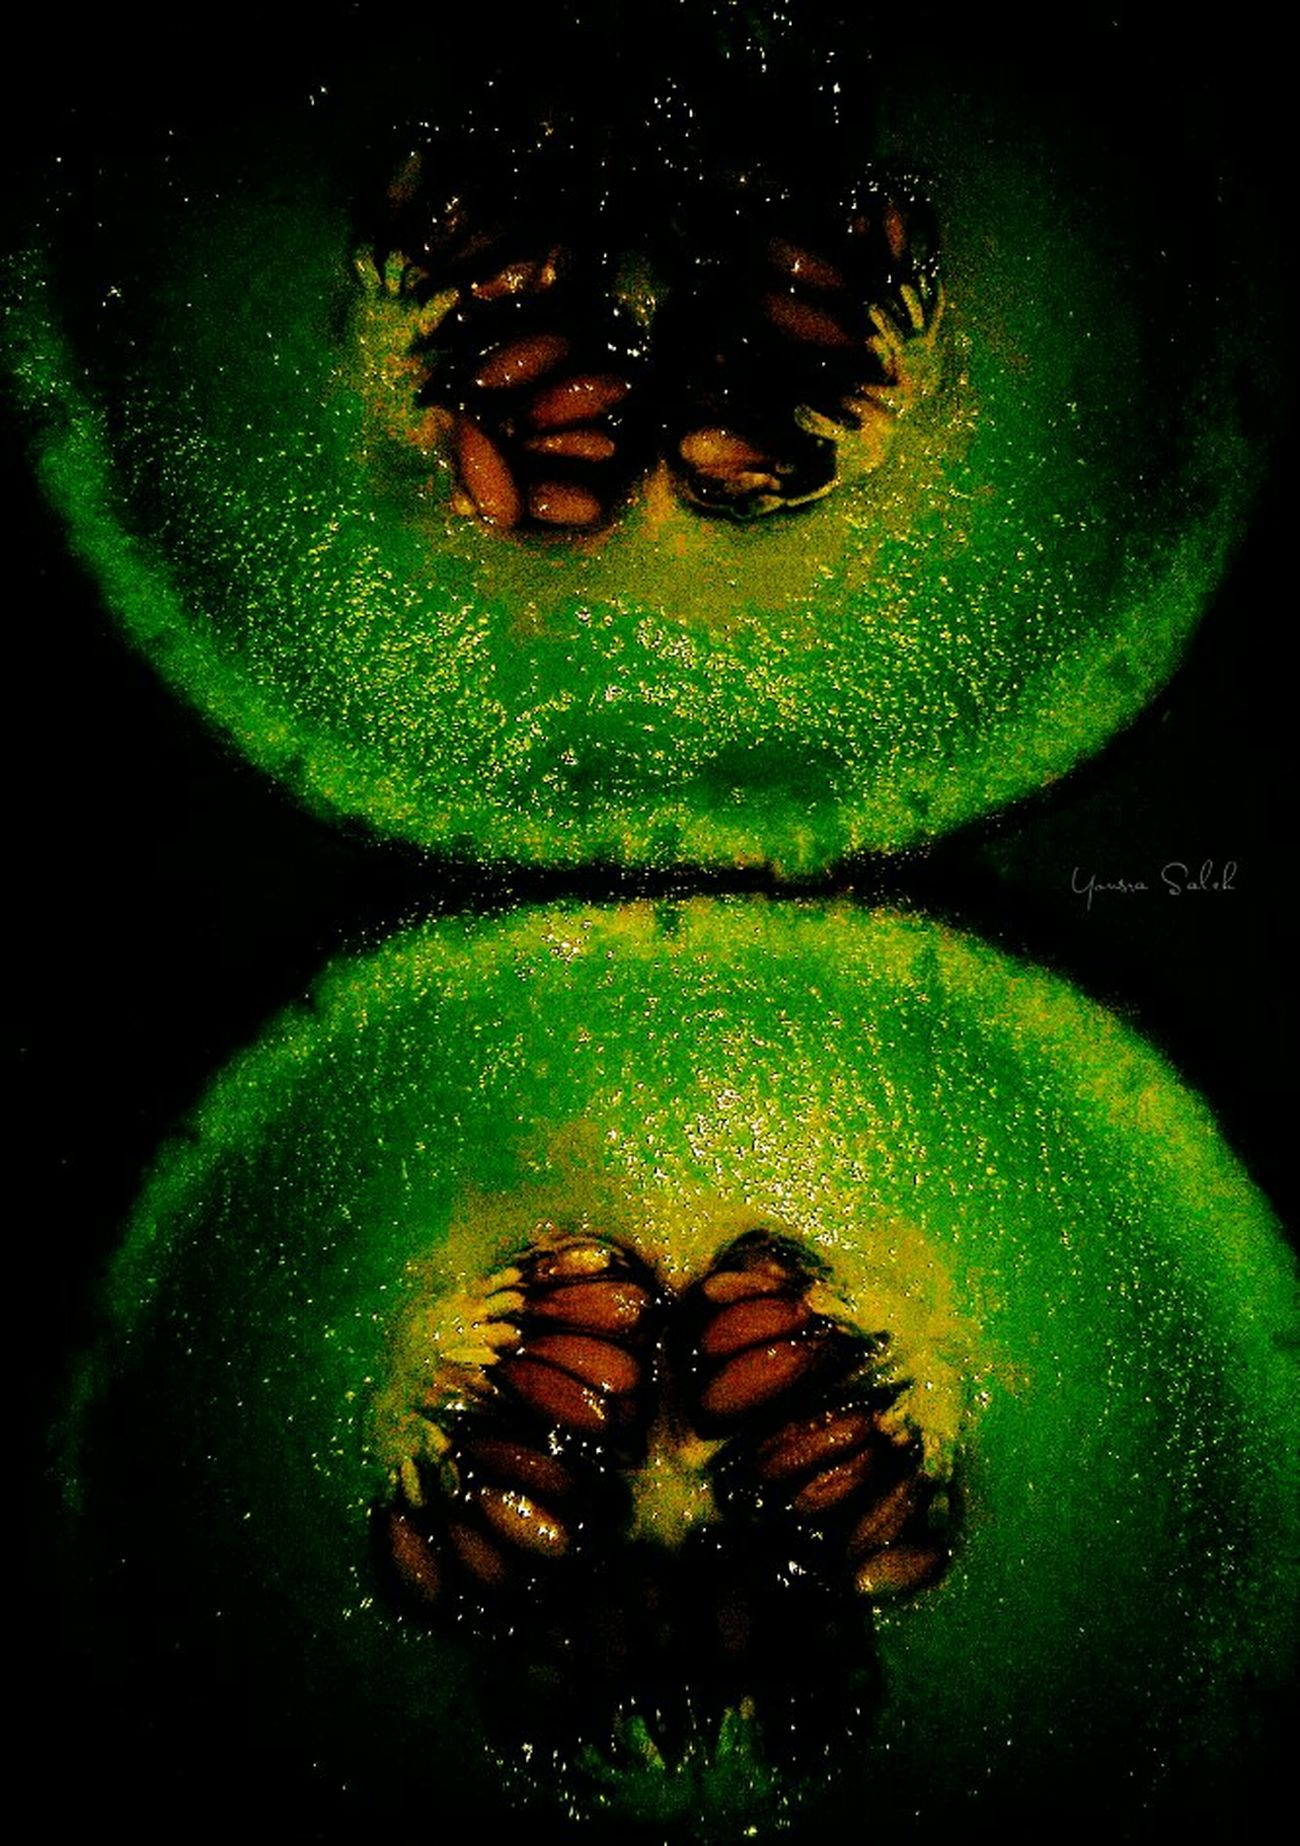 Cantaloupe Cantaloup Cantalope Seeds Cantalop Seeds Greencantaloup Green Cantaloupe Fruit Seed Fruit Seeds Fruitseeds Fruits Fruit Fruits ♡ Fresh Fruits Fresh Food Fresh Fresh Produce Fresh Fresh Fresh Healthy Eating Healthy Food Food Collection FoodFood Porn Black Background Close-up Details 🍈